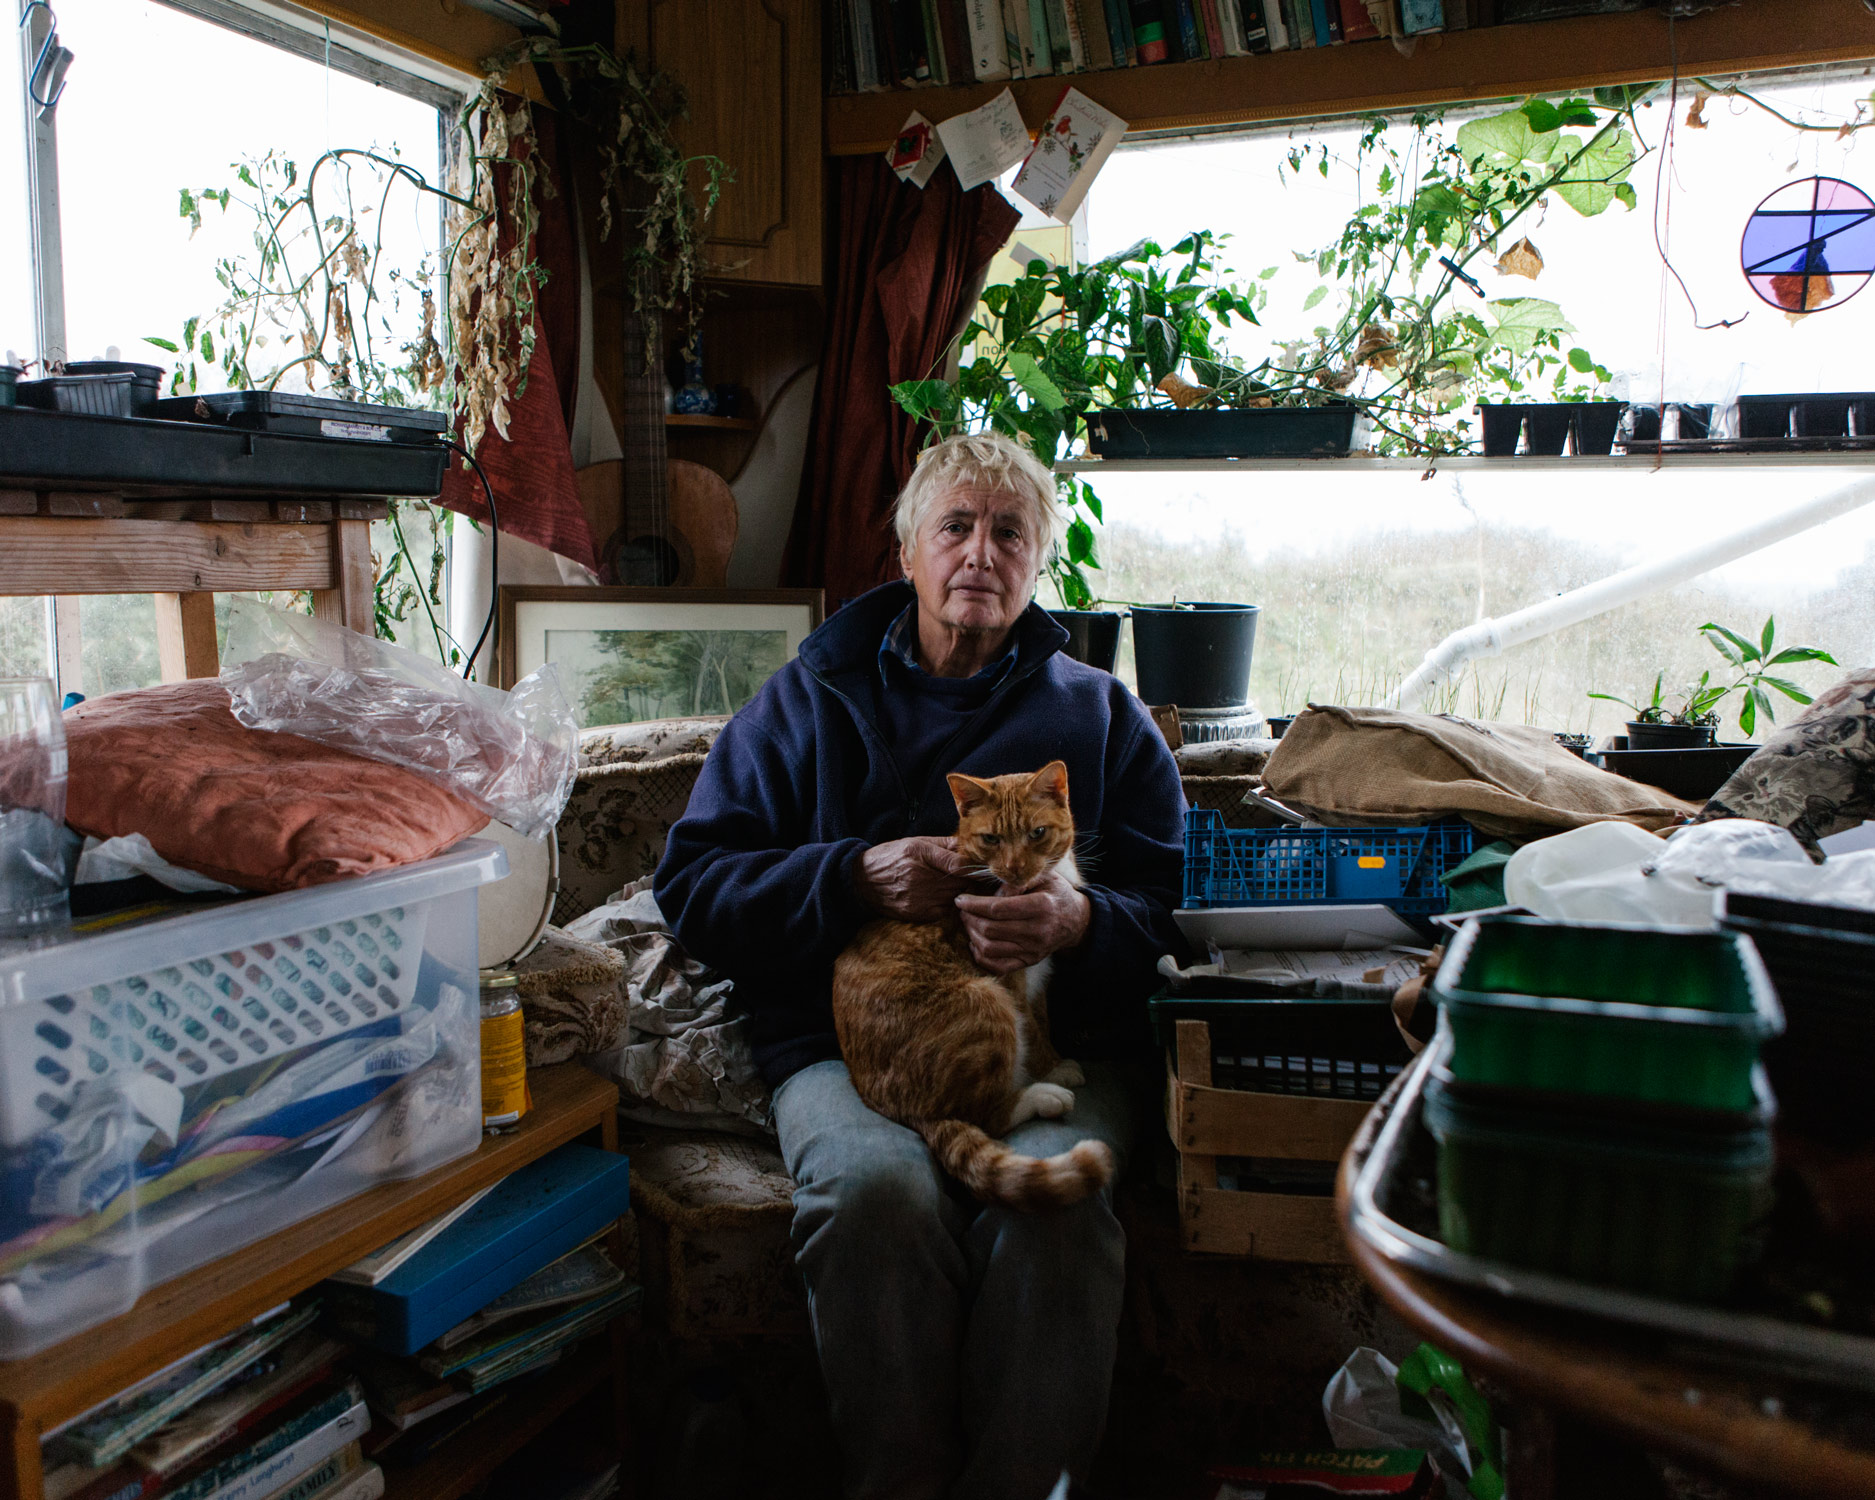 """A big tidal surge in 2013 finally undermined Bryony's bungalow. She was forced to move across the street and into a caravan with all her possessions.""""At the age of 70 I've lost my house and now I'm on the verge of losing everything. I'm fighting to keep my life together."""" - Photograph taken in 2017."""